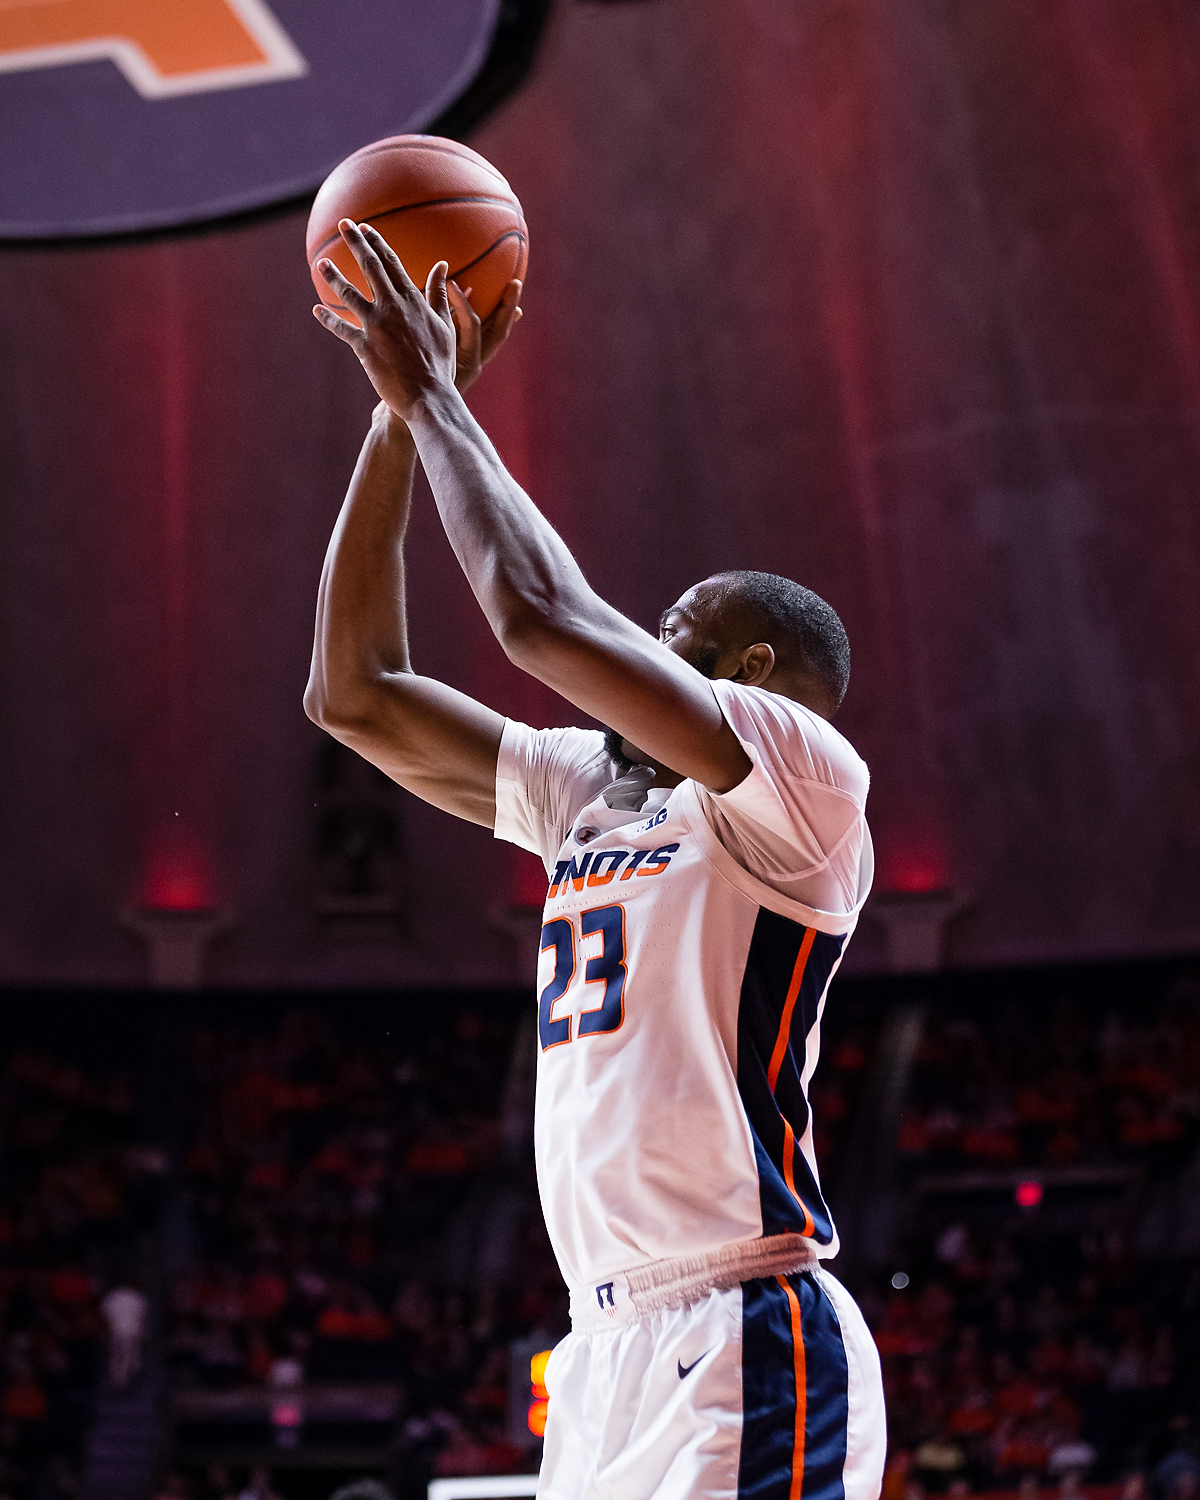 Illinois guard Aaron Jordan shoots a three during the game against Indiana at the State Farm Center on Thursday. The Illini lost 92-74.